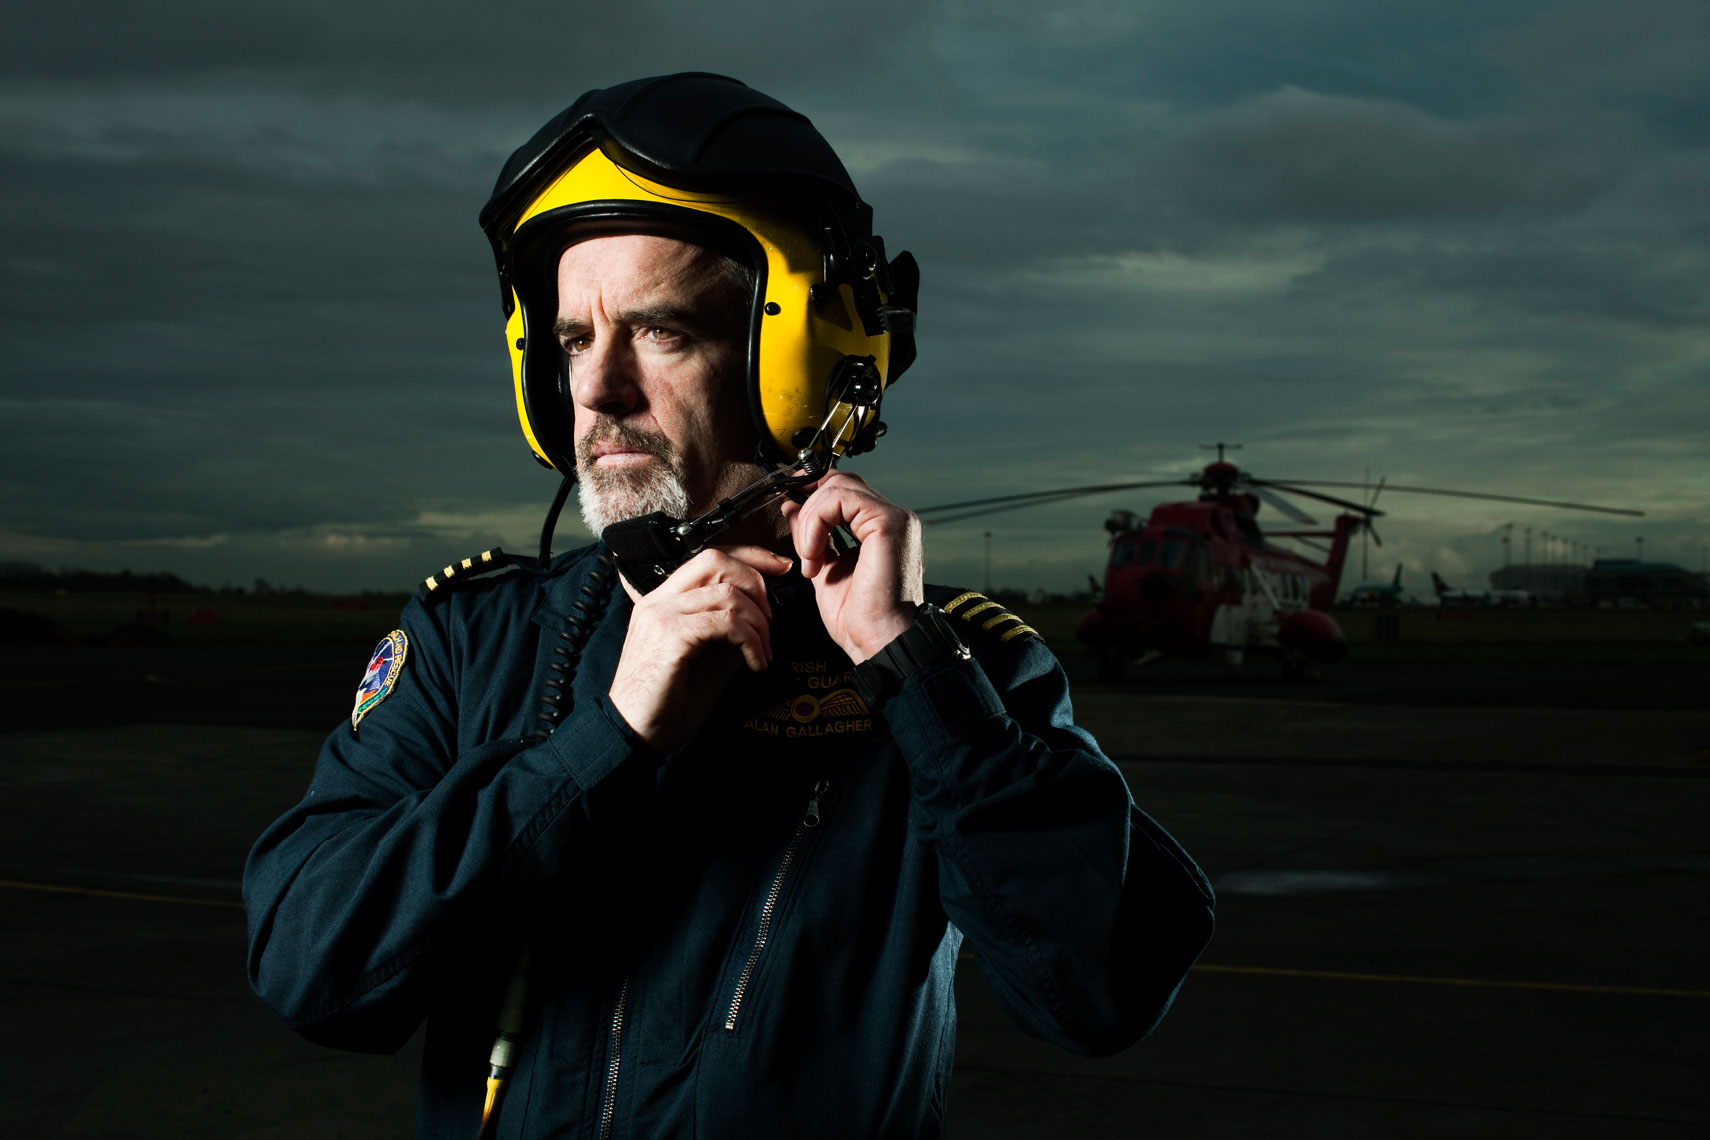 portrait photography:  coast guard winchman dressed for work